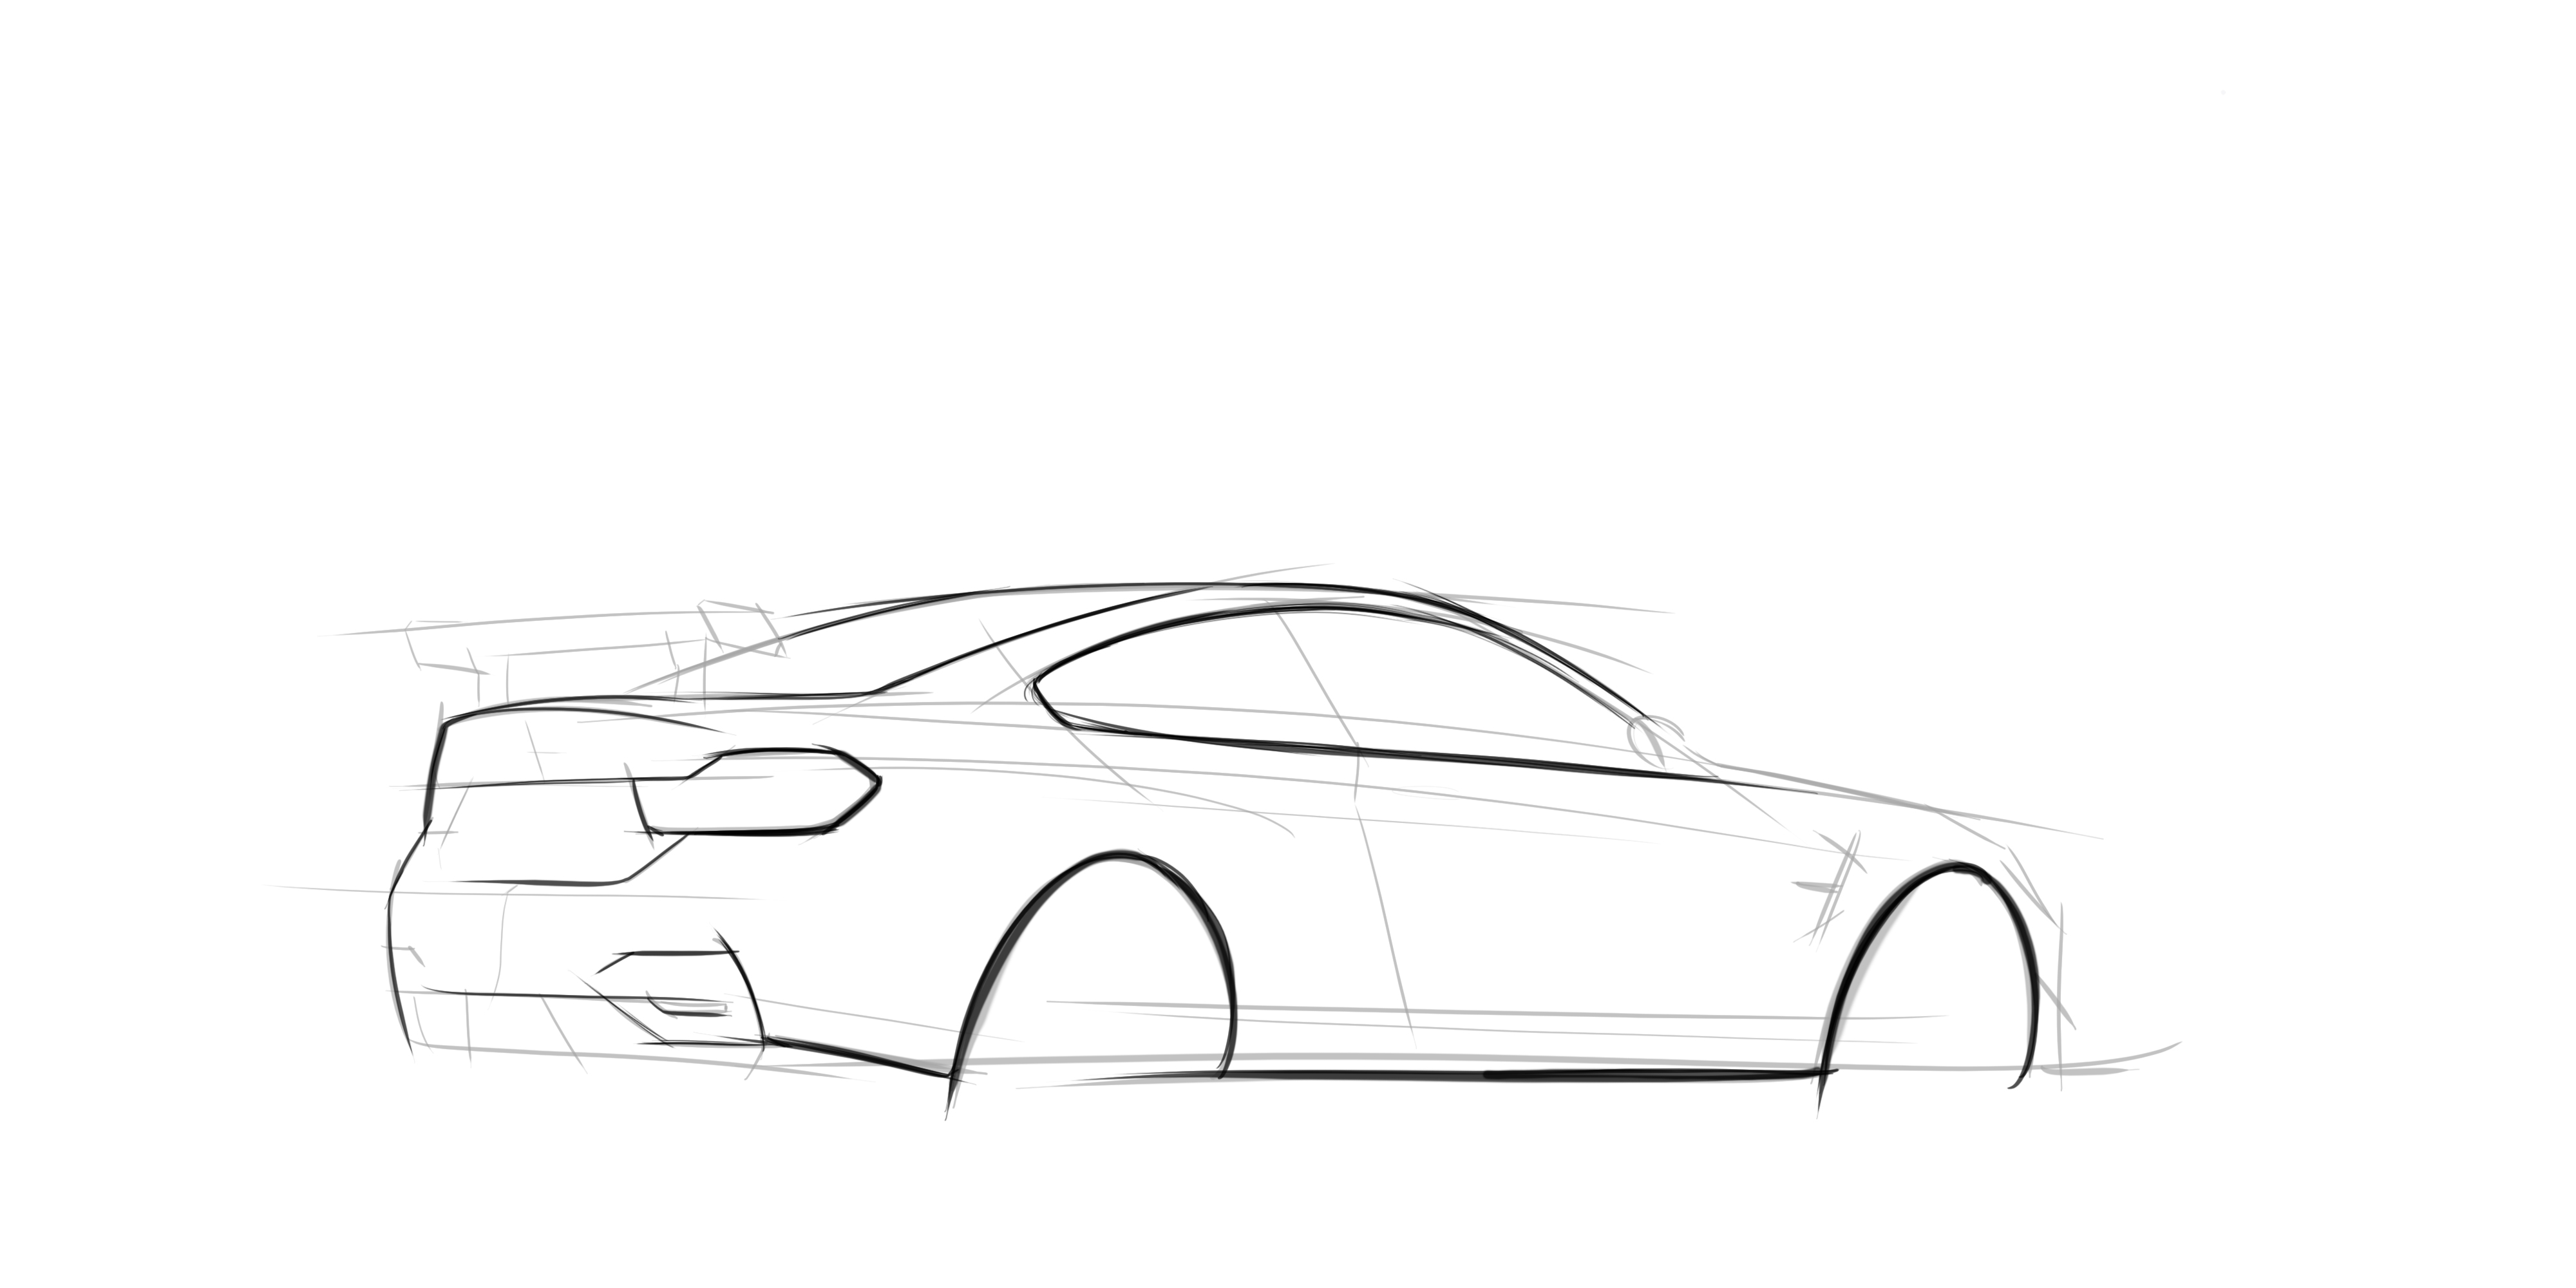 BMW M4 Hand Made Digital Car Sketch Rendering Drawing